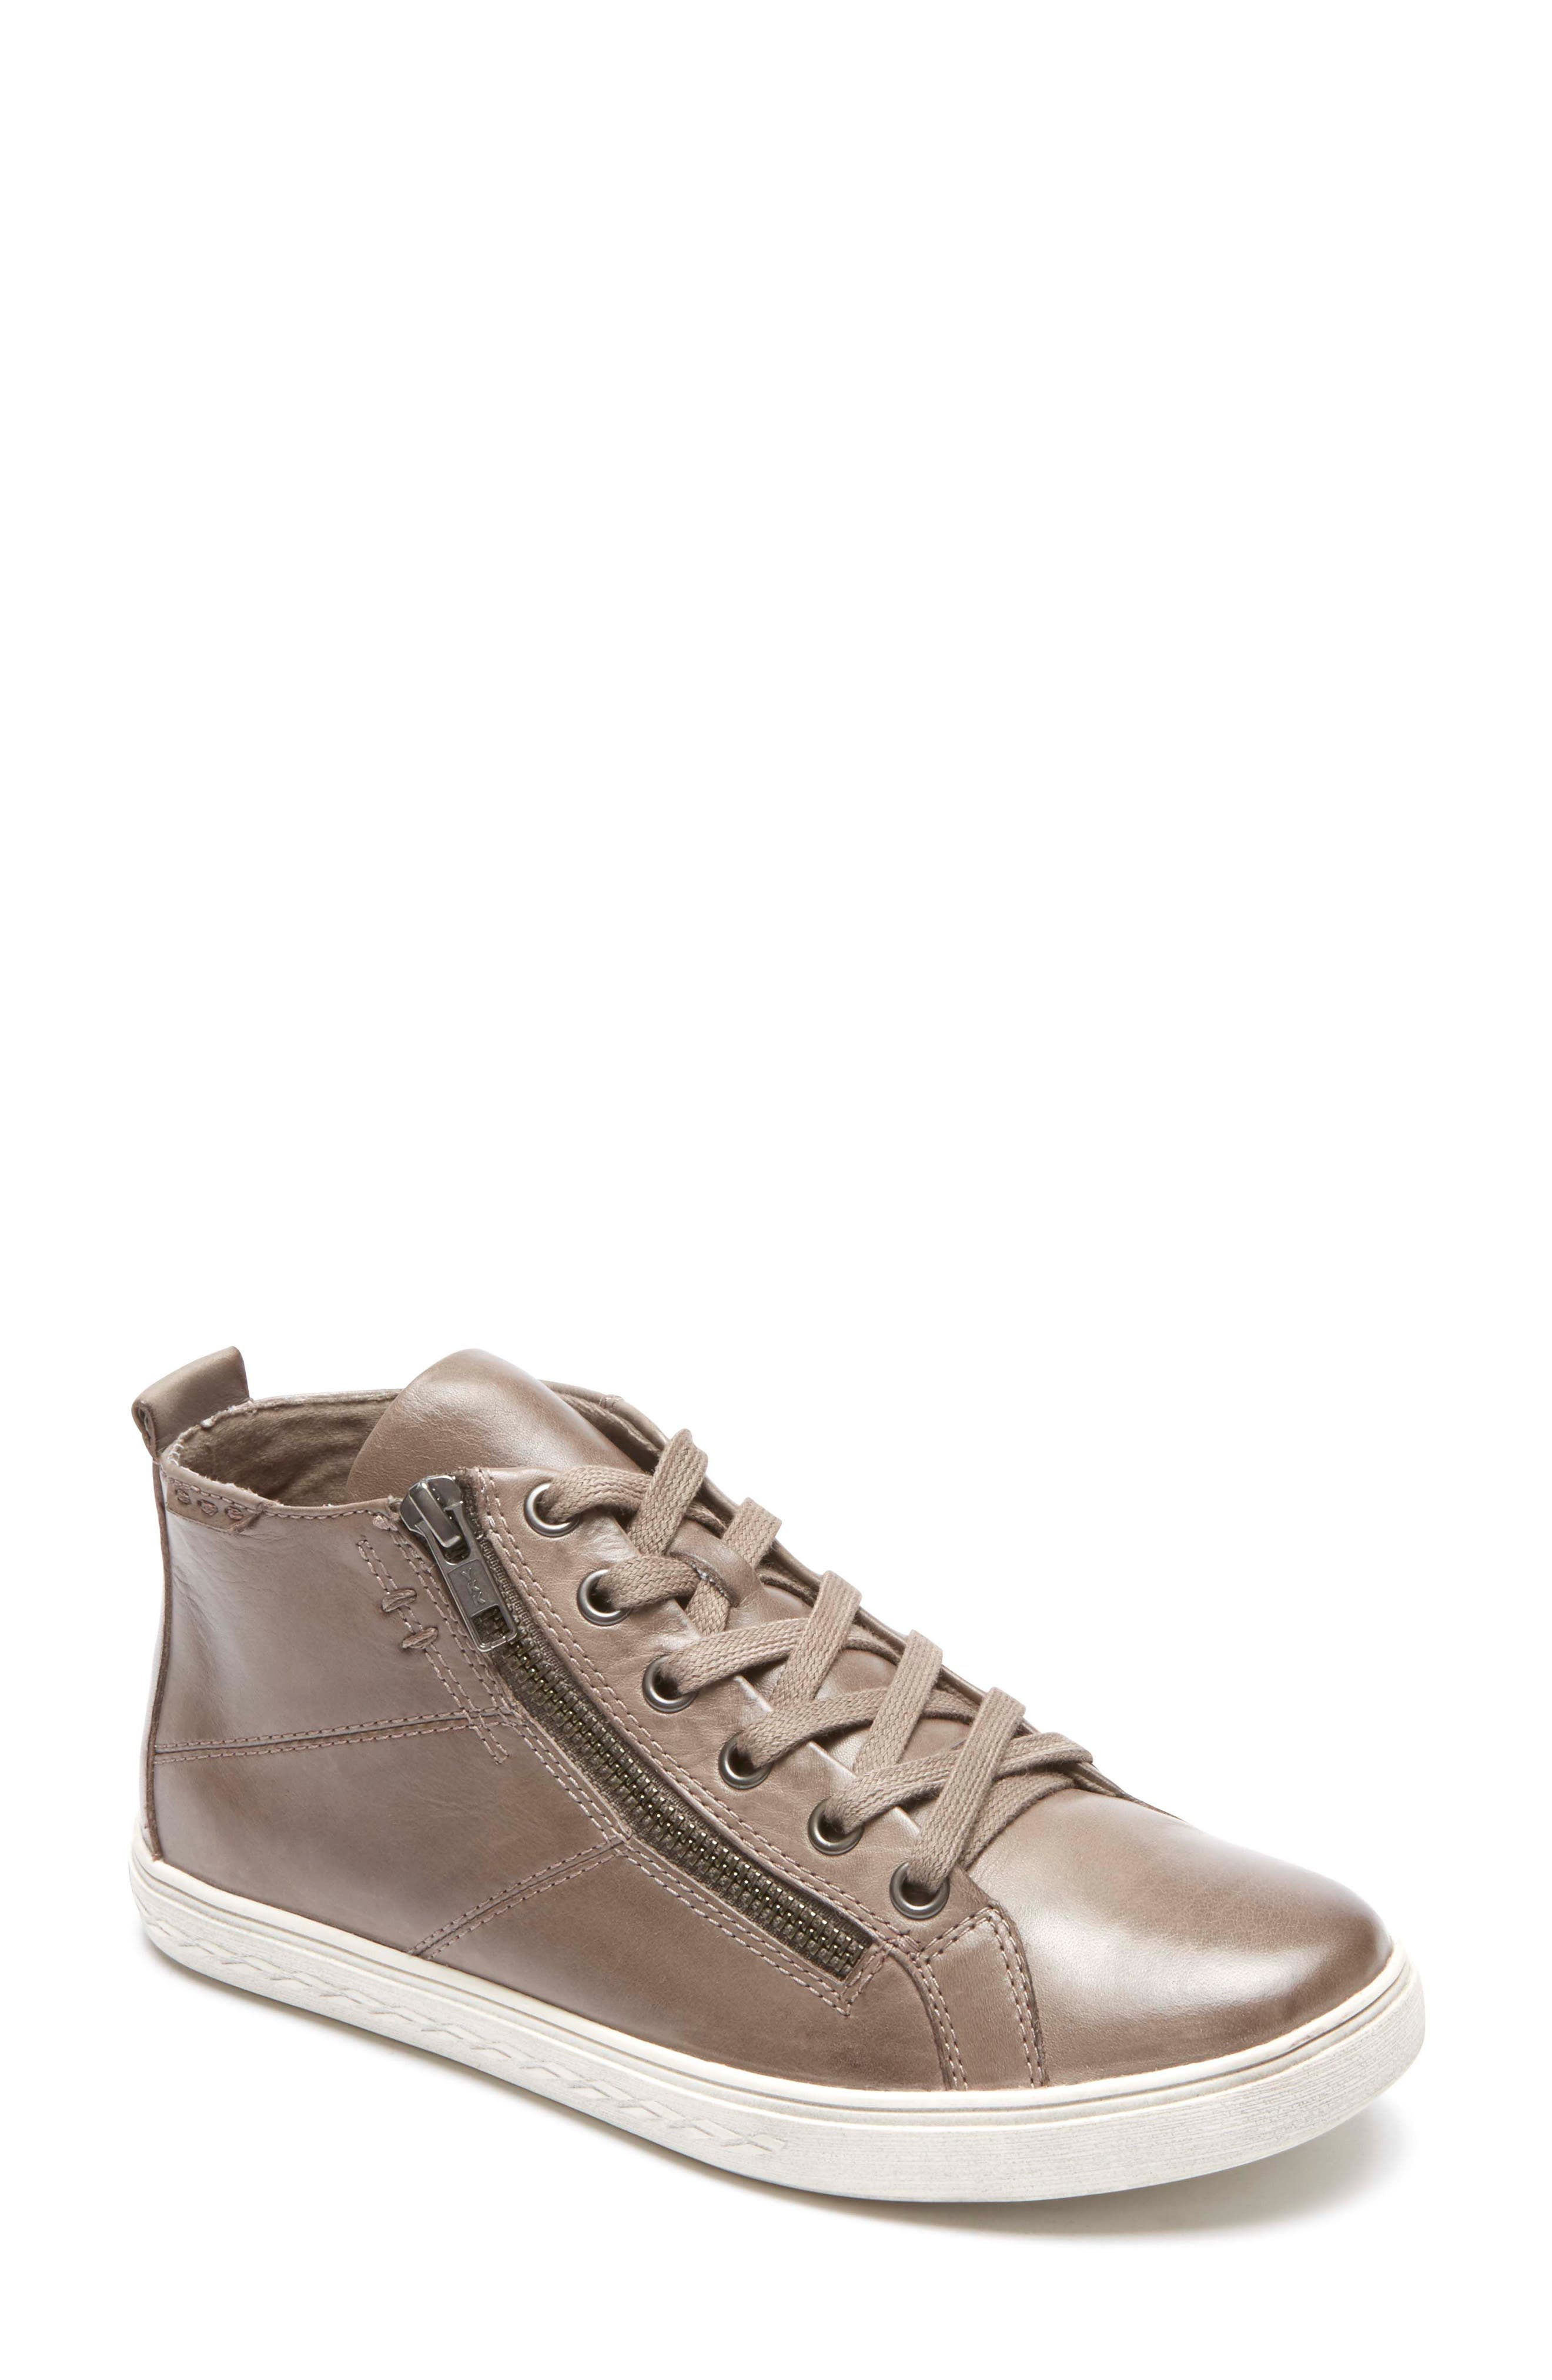 Willa High Top Sneaker,                         Main,                         color, Grey Leather